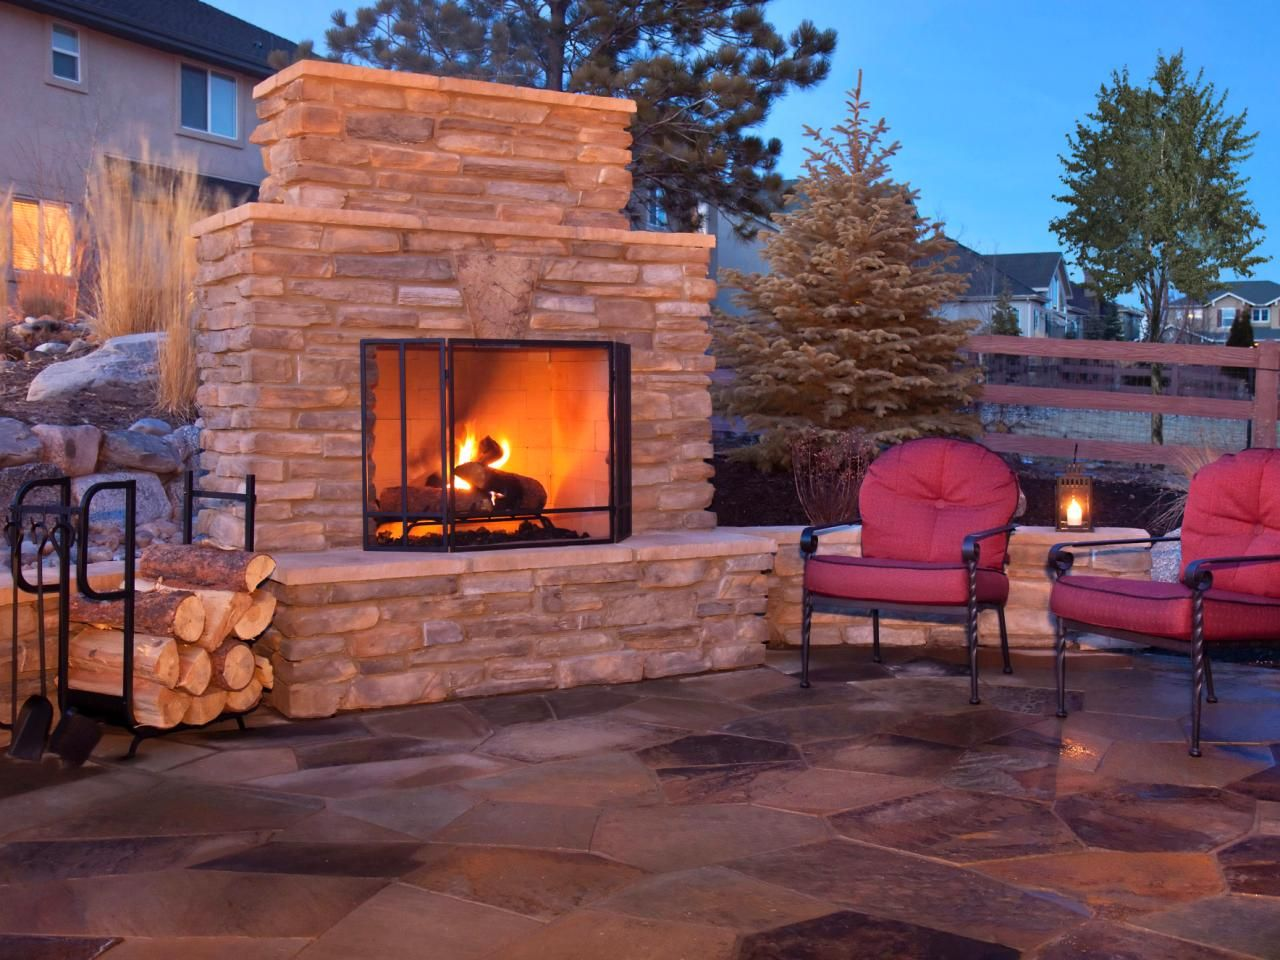 How To Plan For Building An Outdoor Fireplace Outdoor Gas